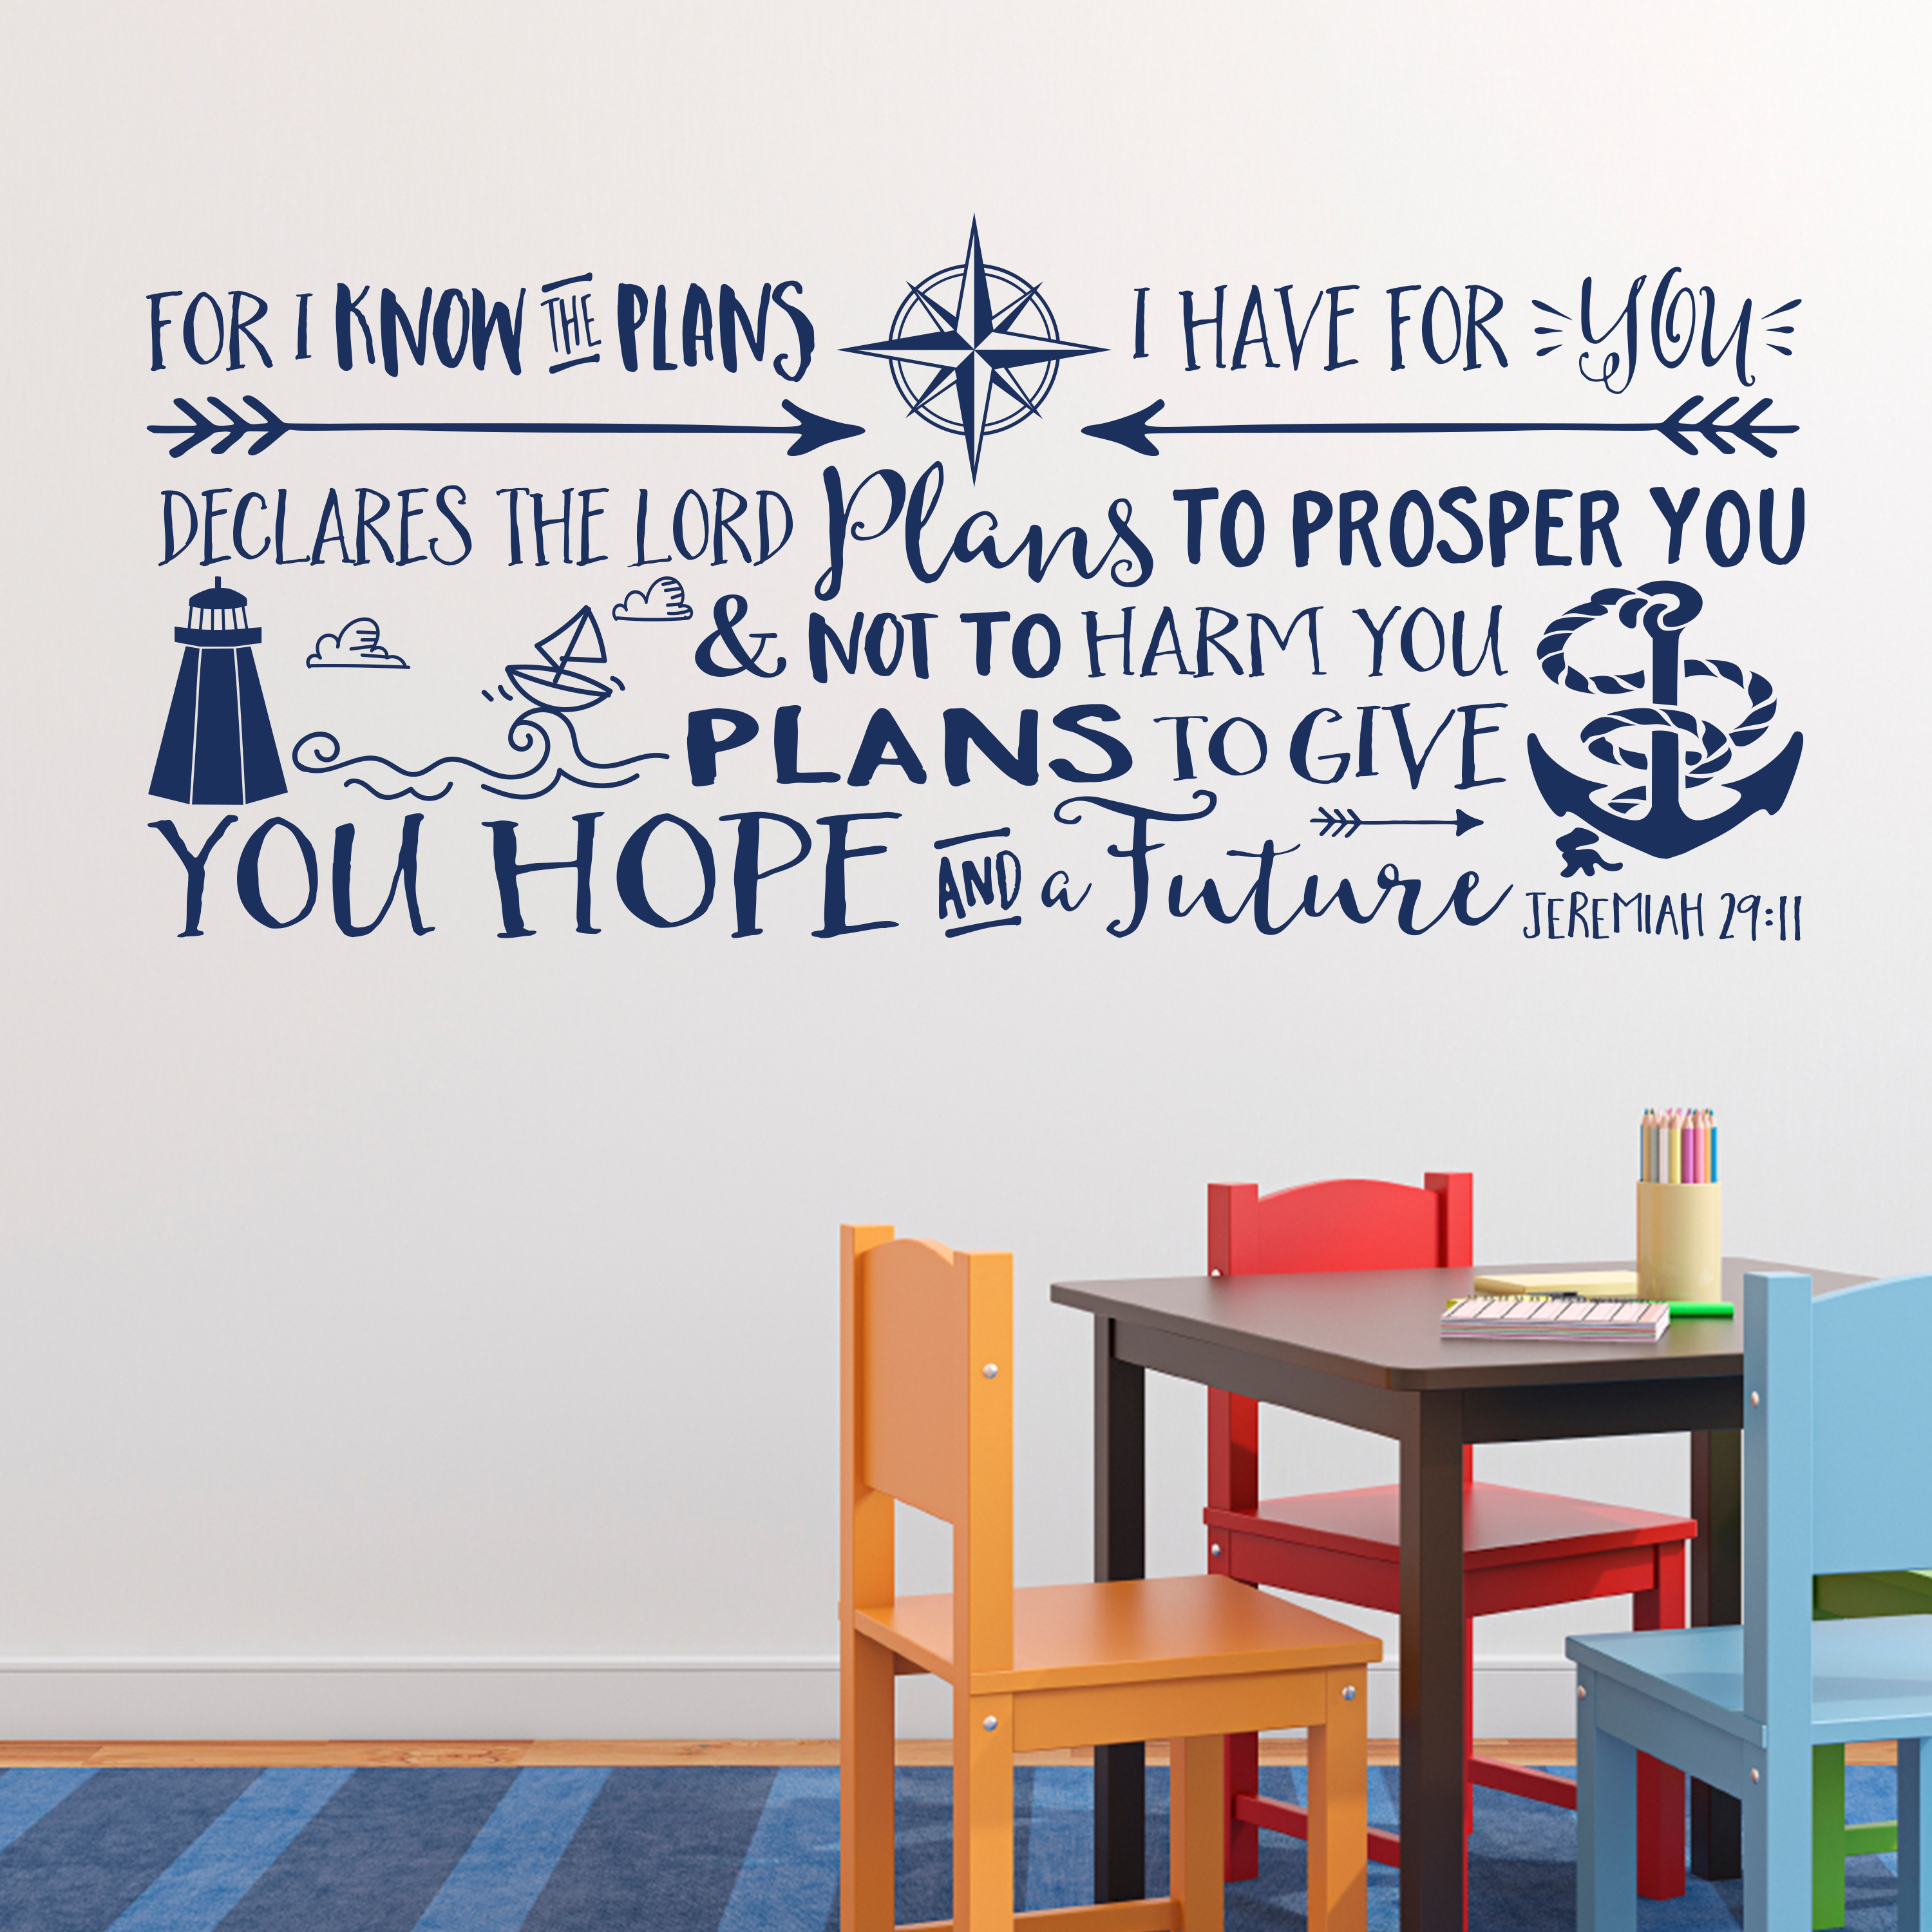 Explorer nursery archives jeremiah 2911 vinyl wall decal 5 by wild eyes signs for i know the plans i have for you explorer nursery arrows lighthouse anchor nautical amipublicfo Image collections